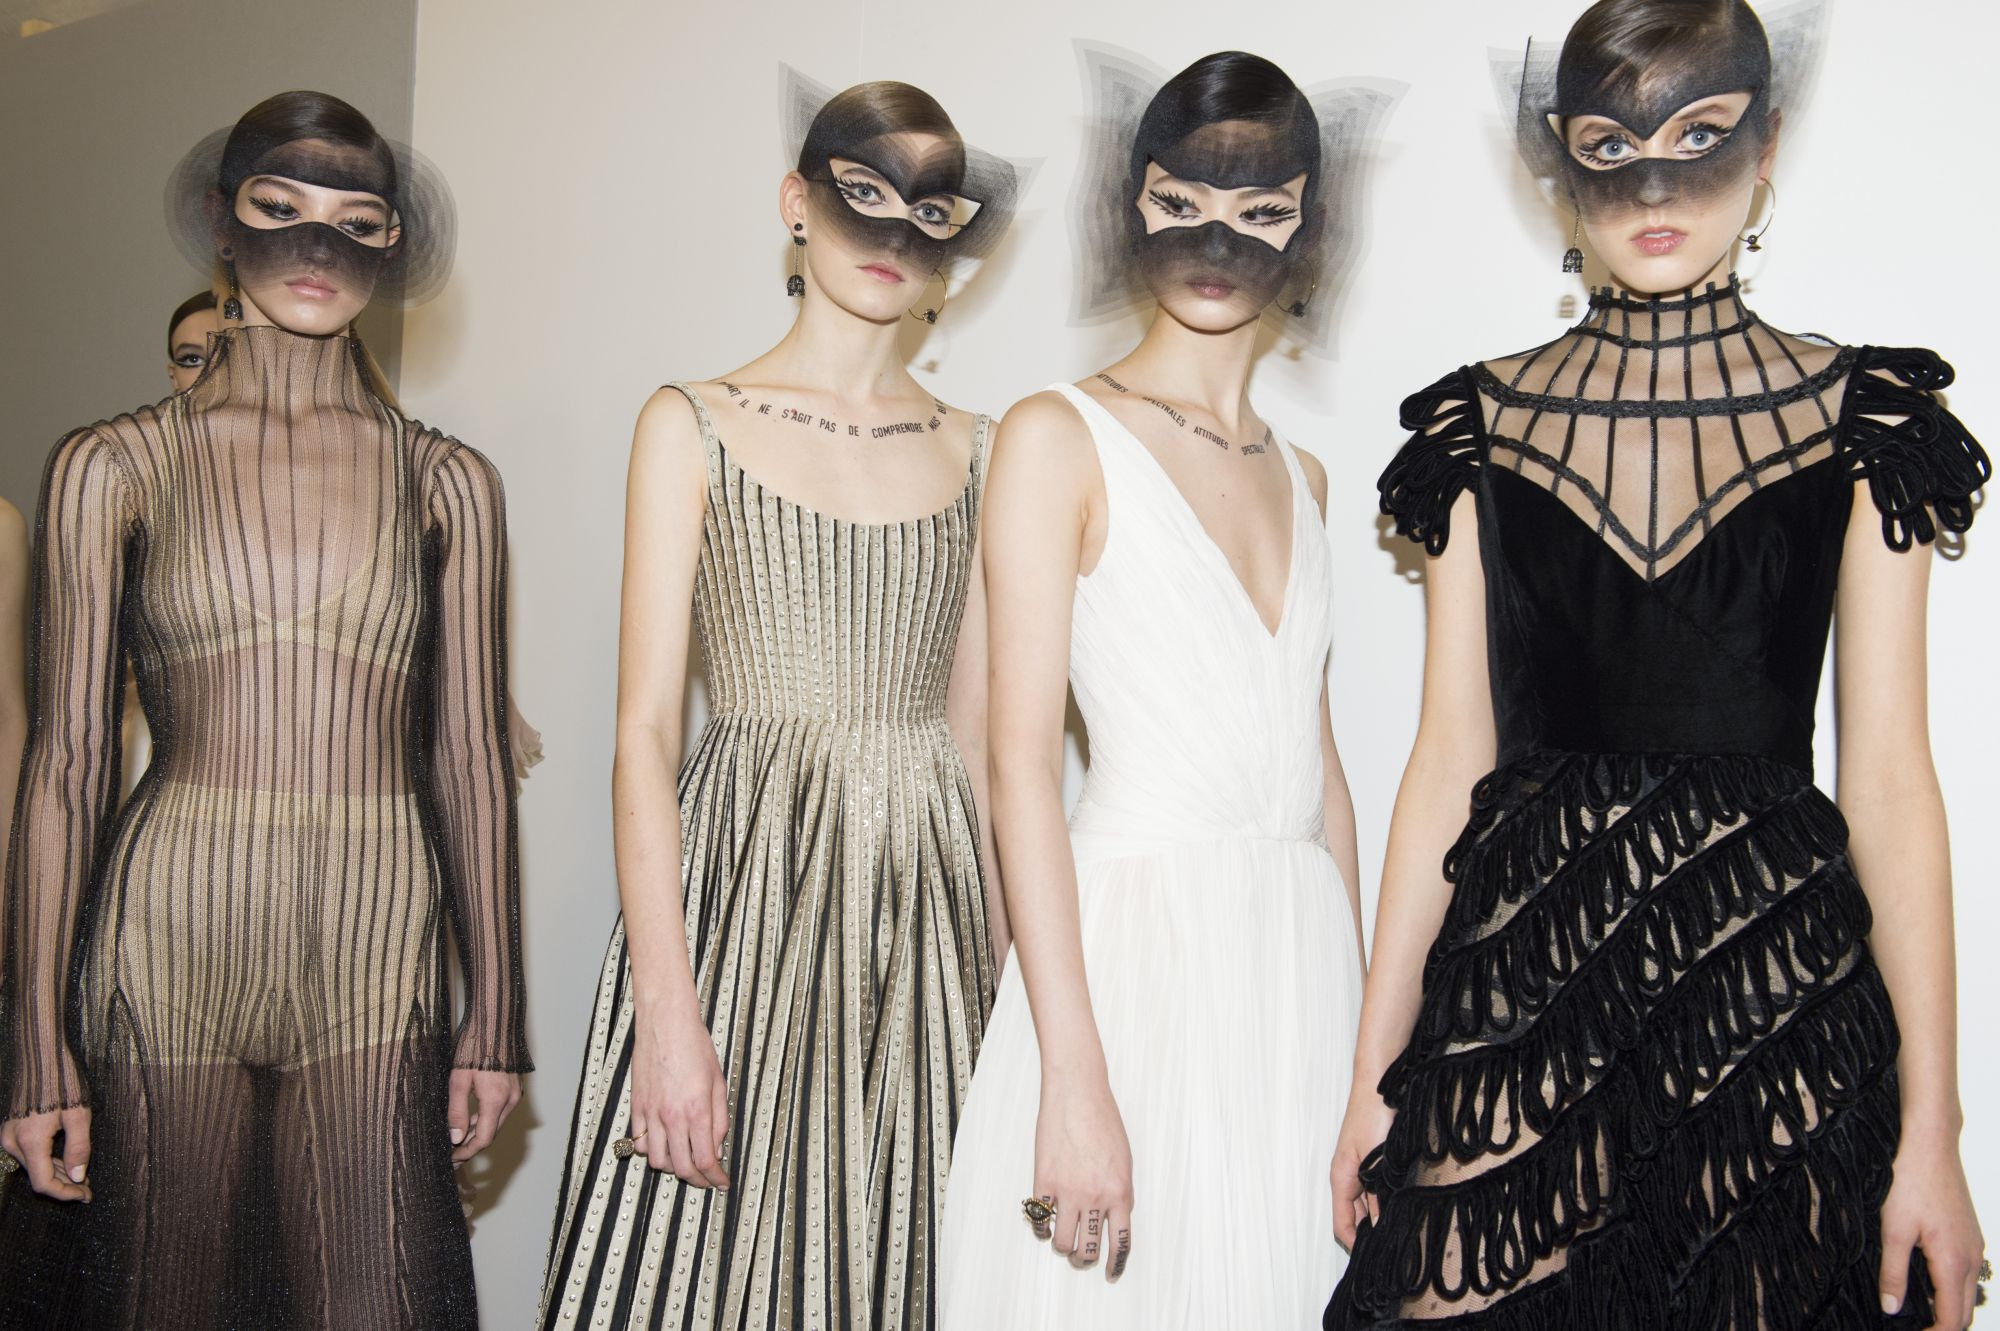 The 7 Most Talked About Looks From Paris Couture Fashion Week 2018